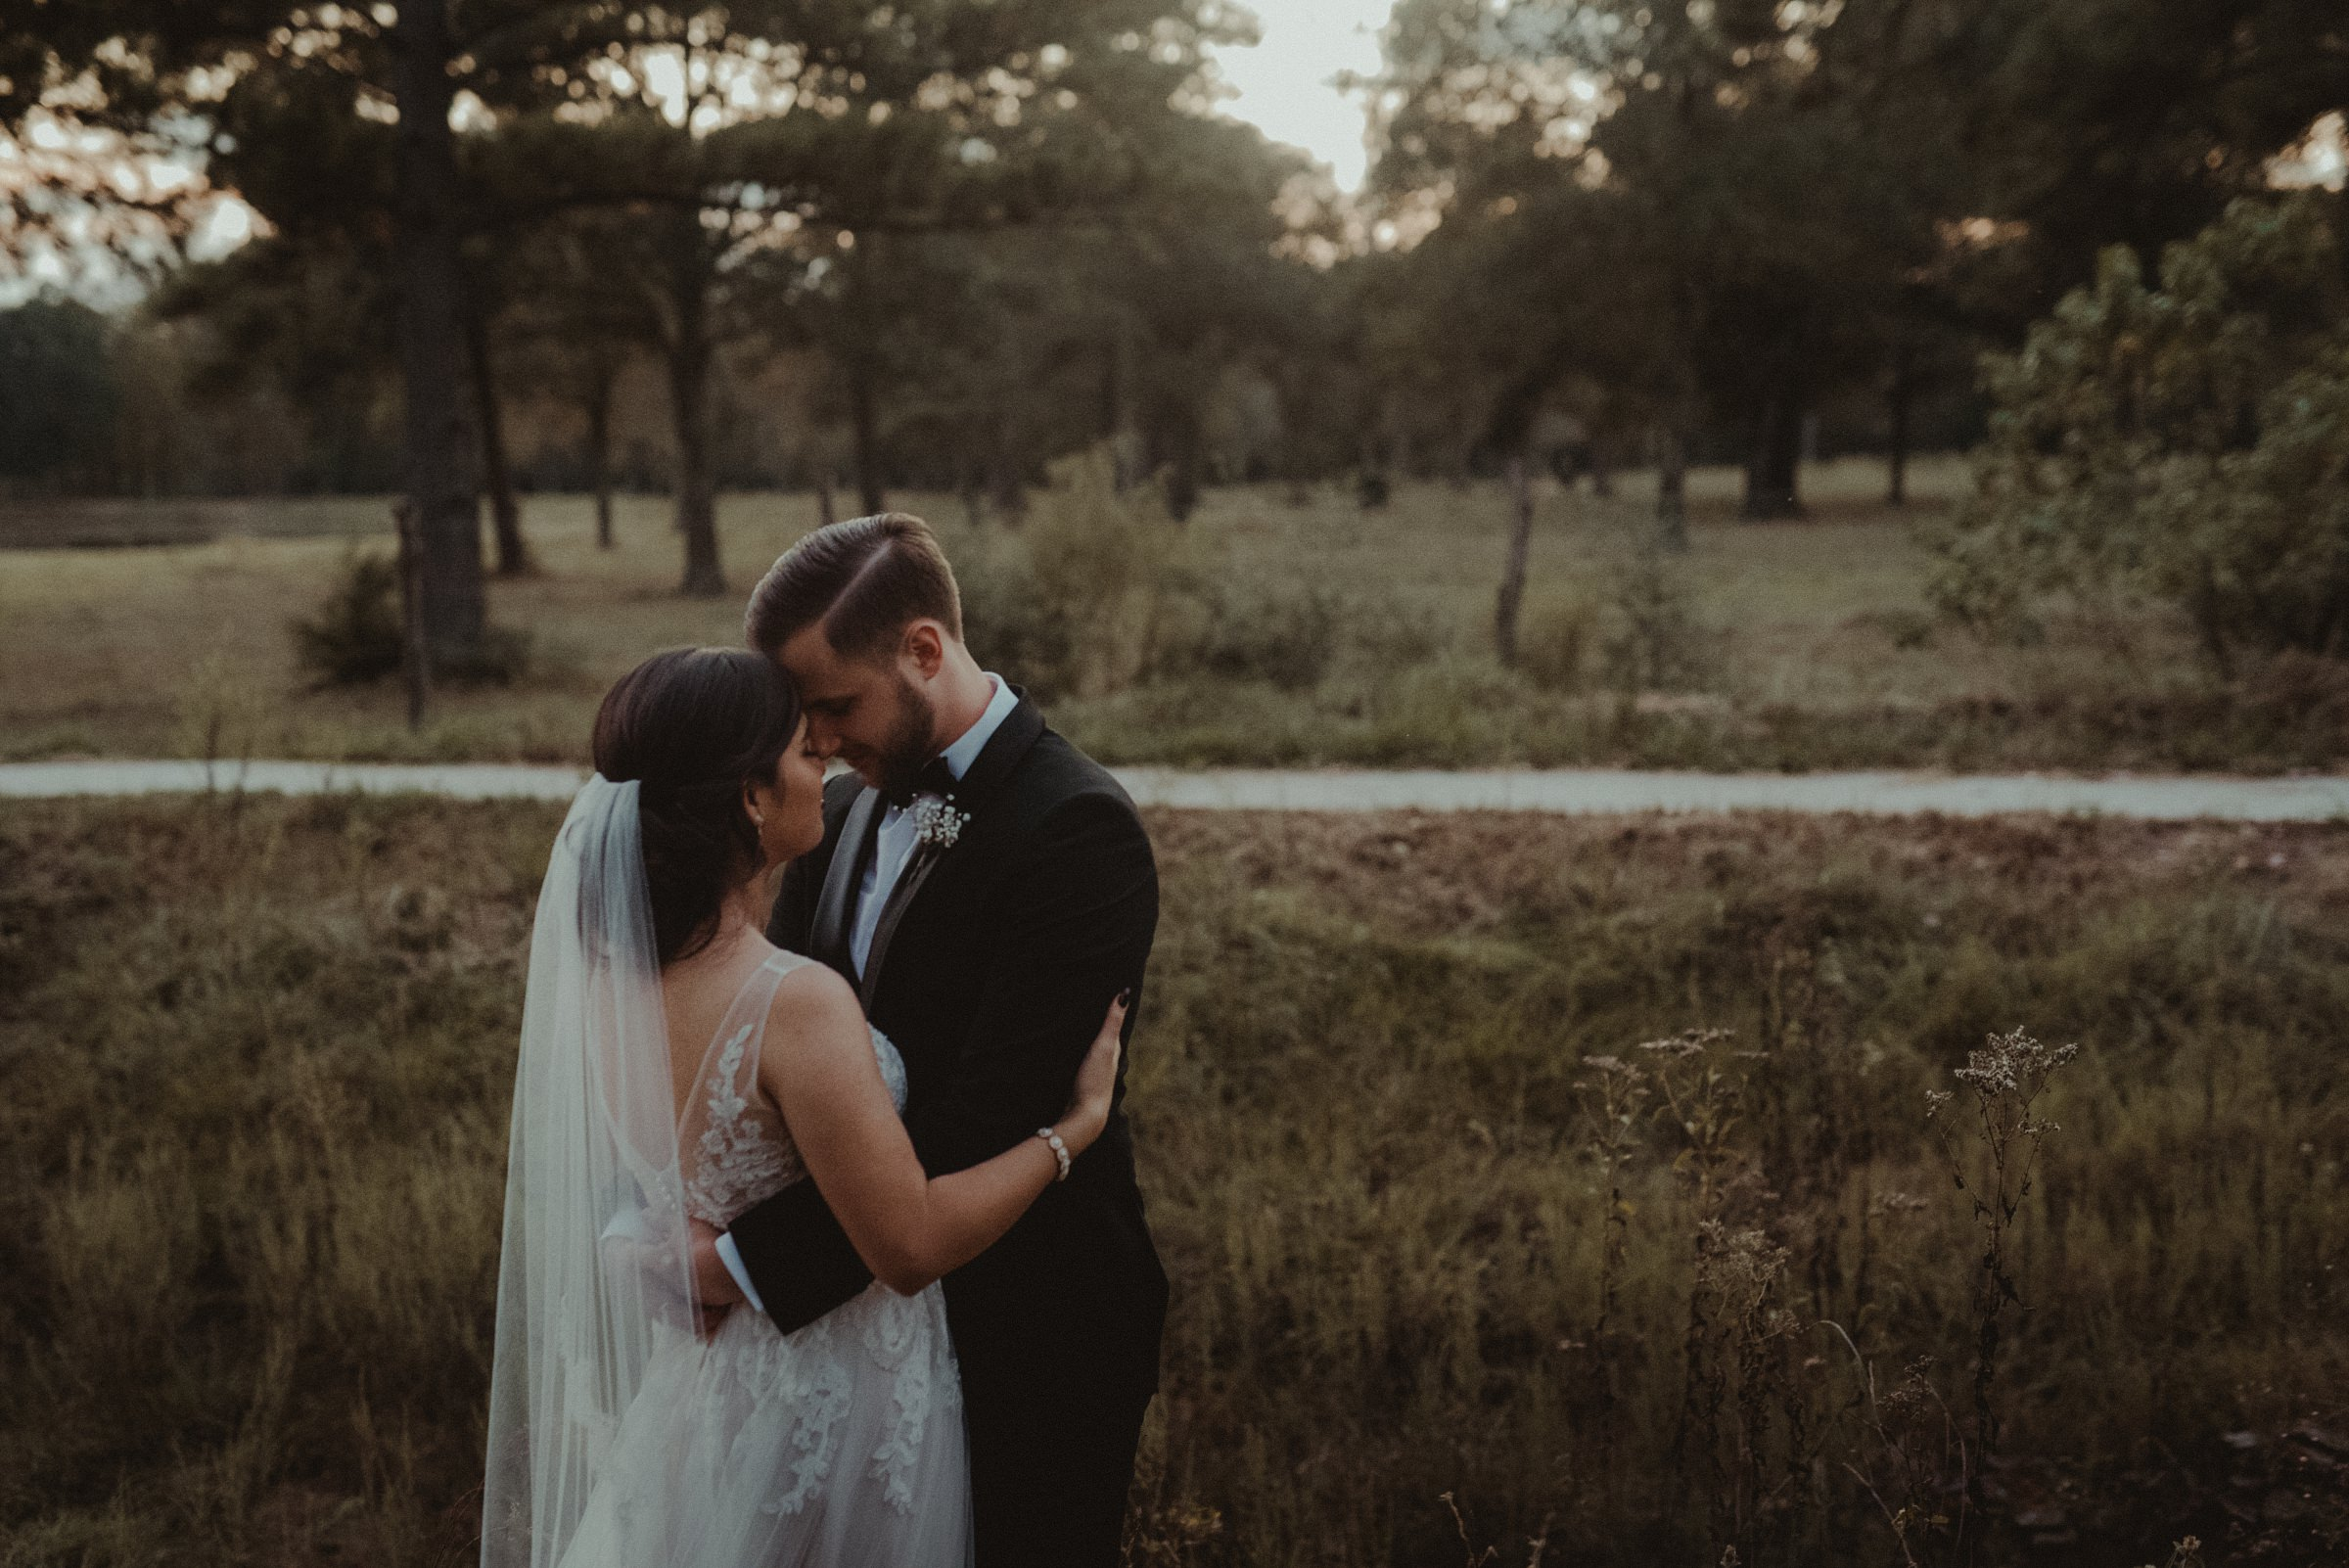 Houston Wedding at The Springs in The Woodlands